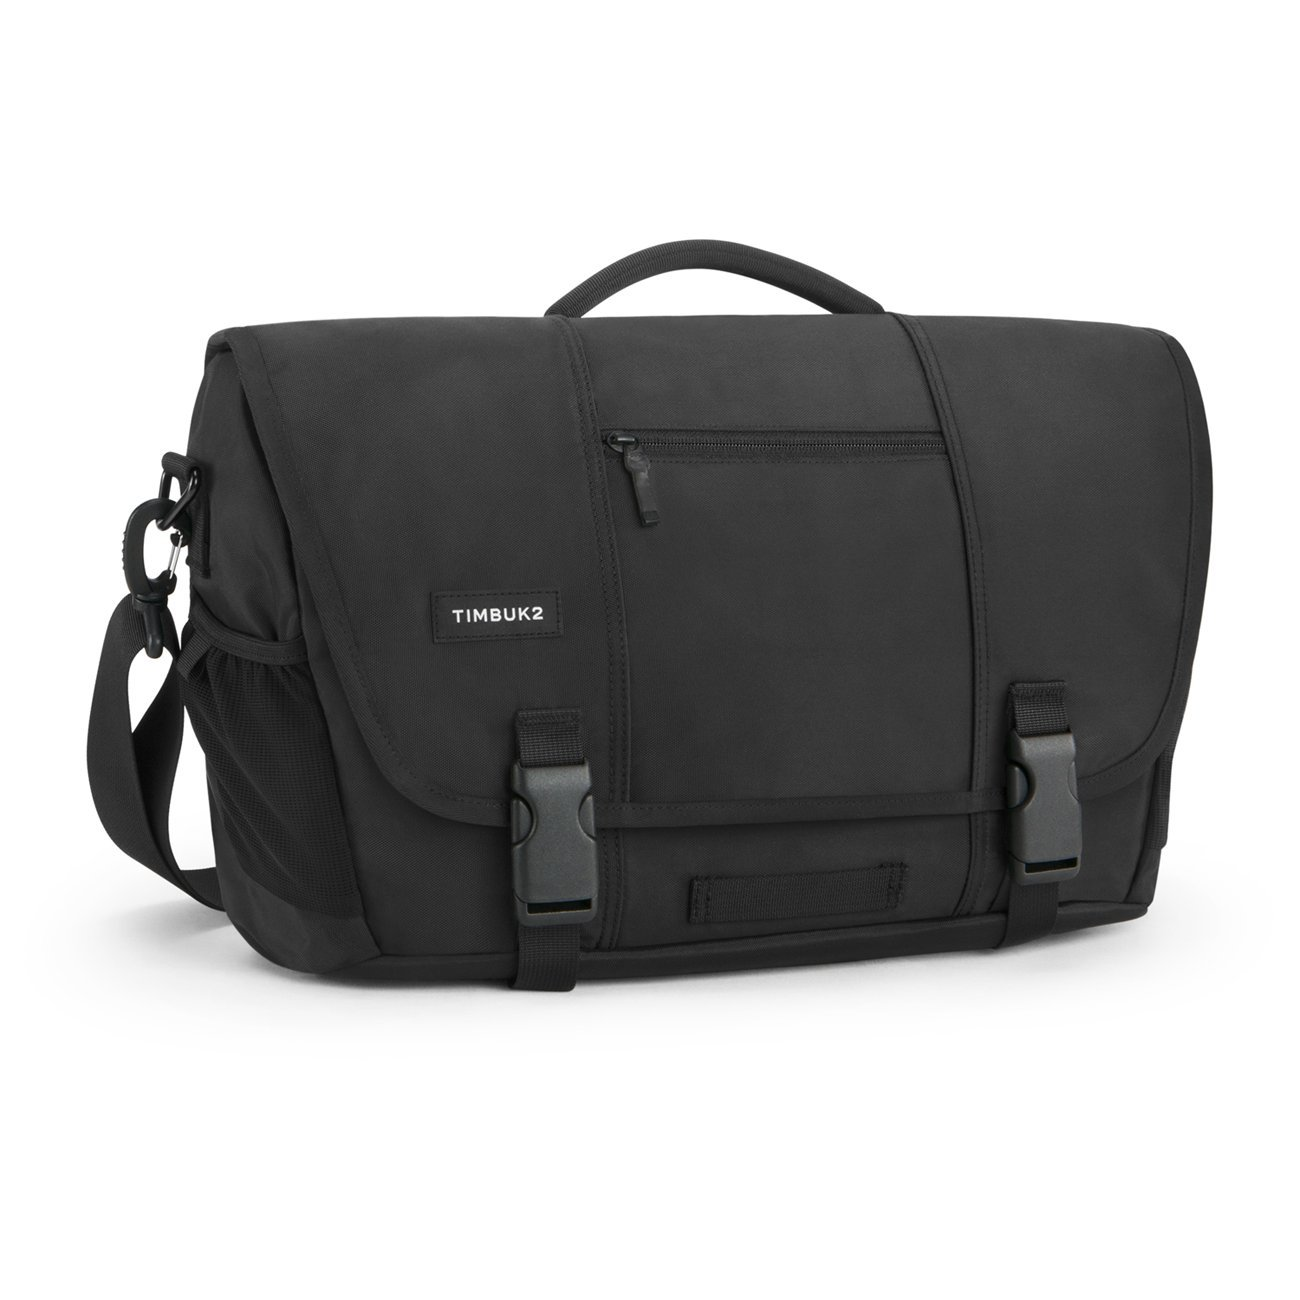 Timbuk2 Commute Messenger Bag, Black, Small by Timbuk2